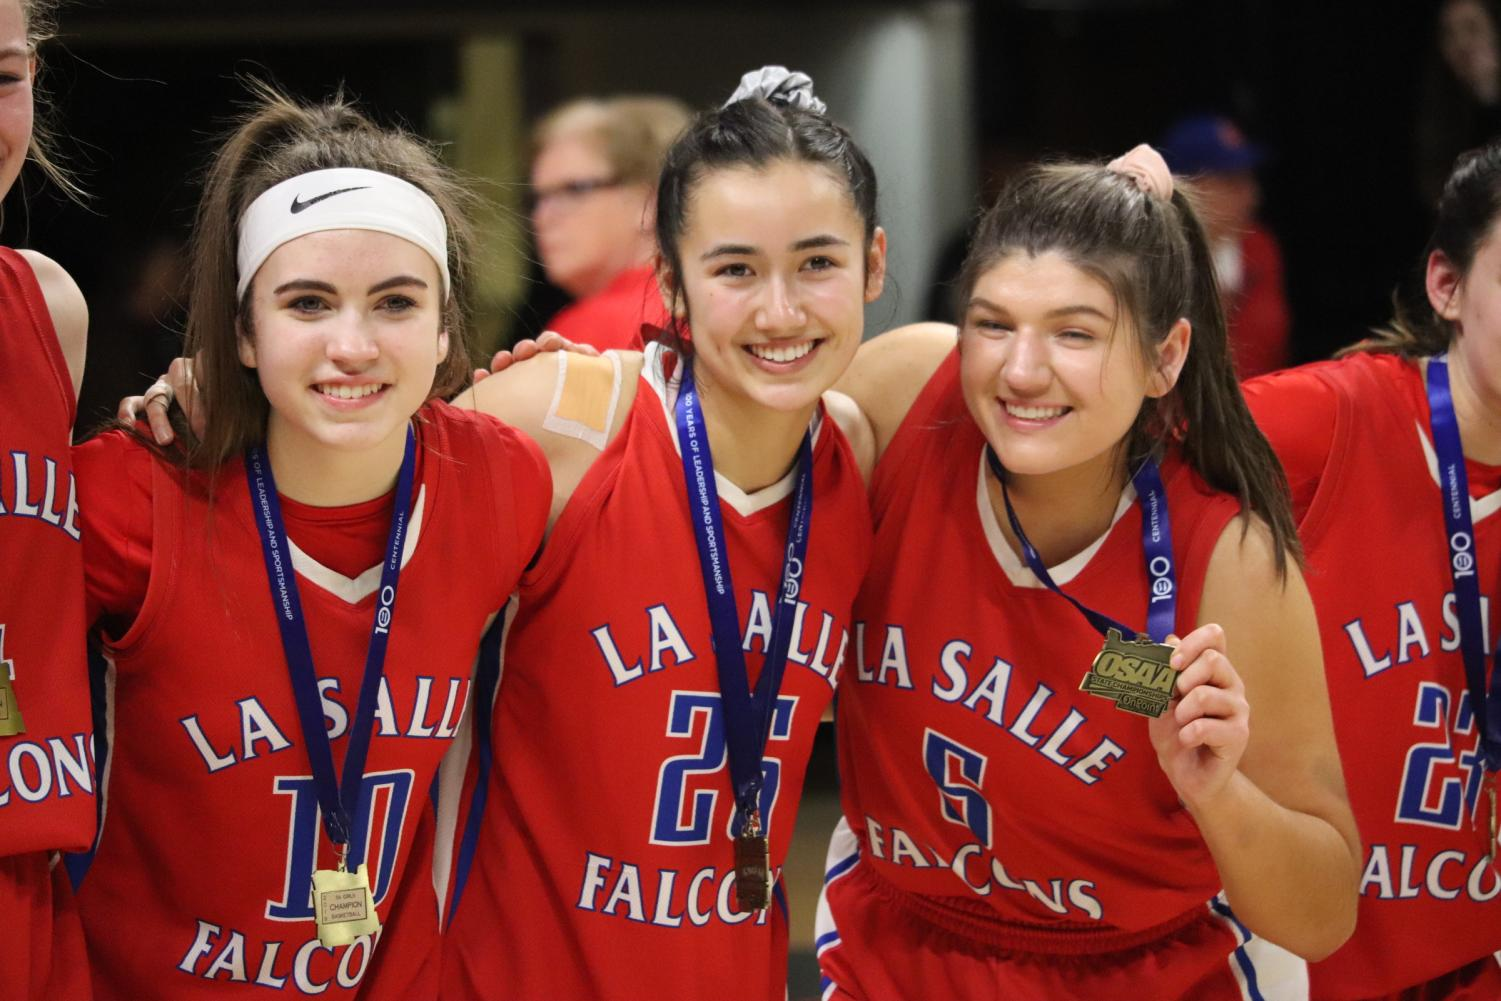 Sophomore+Mandy+Sisul+%28left%29+and+seniors+Miura+%28center%29+and+Jessie+Loboy+%28right%29+stand+side+by+side+to+show+off+their+new+medals.+